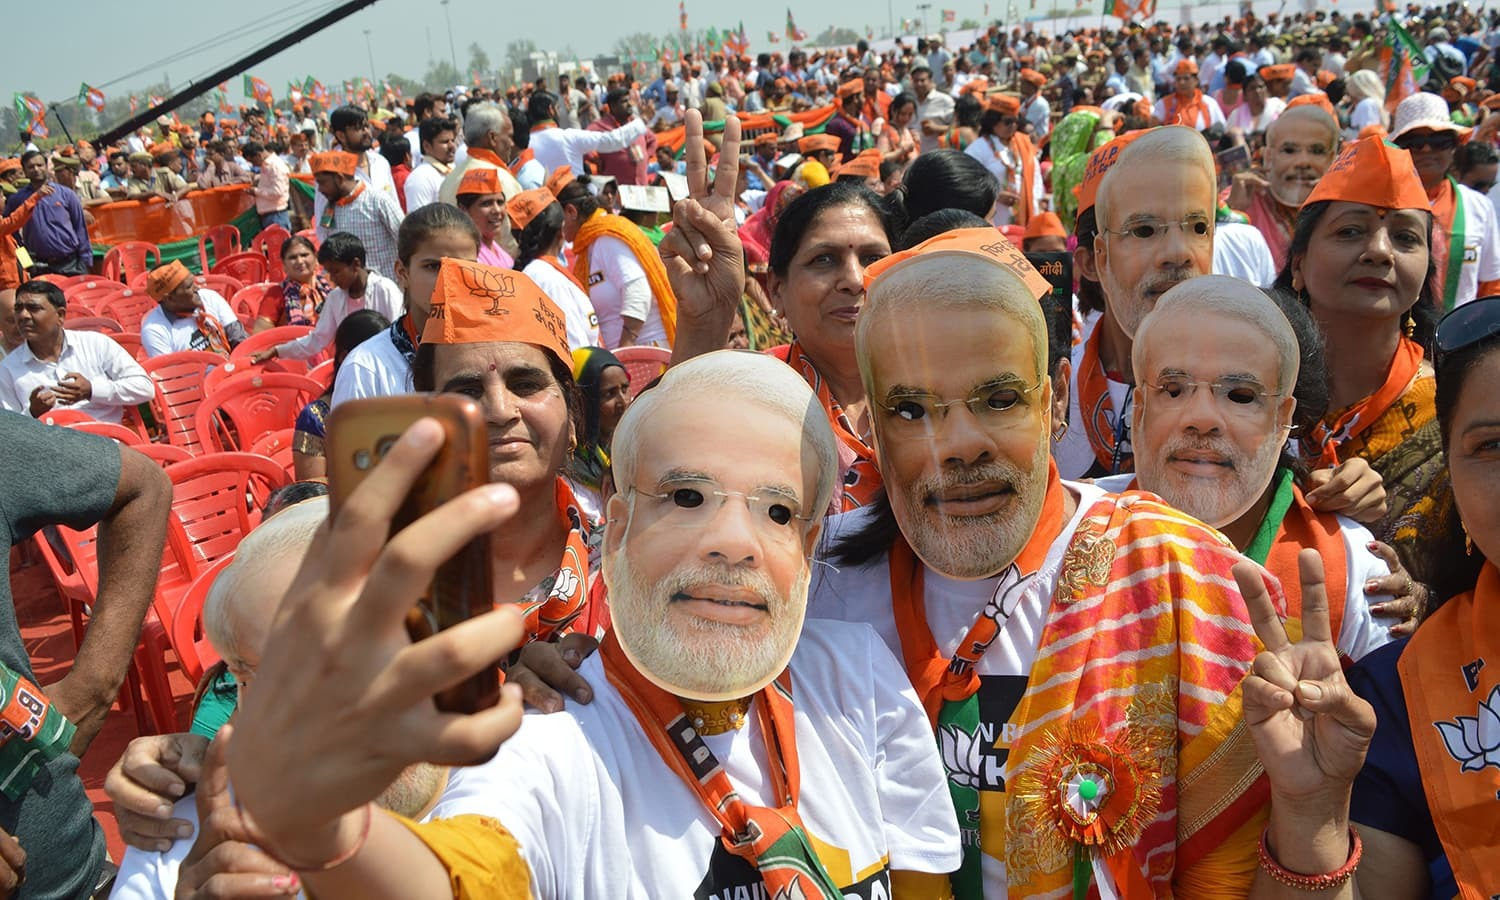 Bhartiya Janata party (BJP) take selfie pictures as they listen Prime Minister Narendra Modi speech during a rally in Meerut in Uttar Pradesh on March 28, 2019. - India's Prime Minister Narendra Modi embarked on a campaign blitz on March 28 with three huge rallies where he declared voters would reward his decision to test new weapons and bomb Pakistan with a thumping election victory. (Photo by STR / AFP) — AFP or licensors